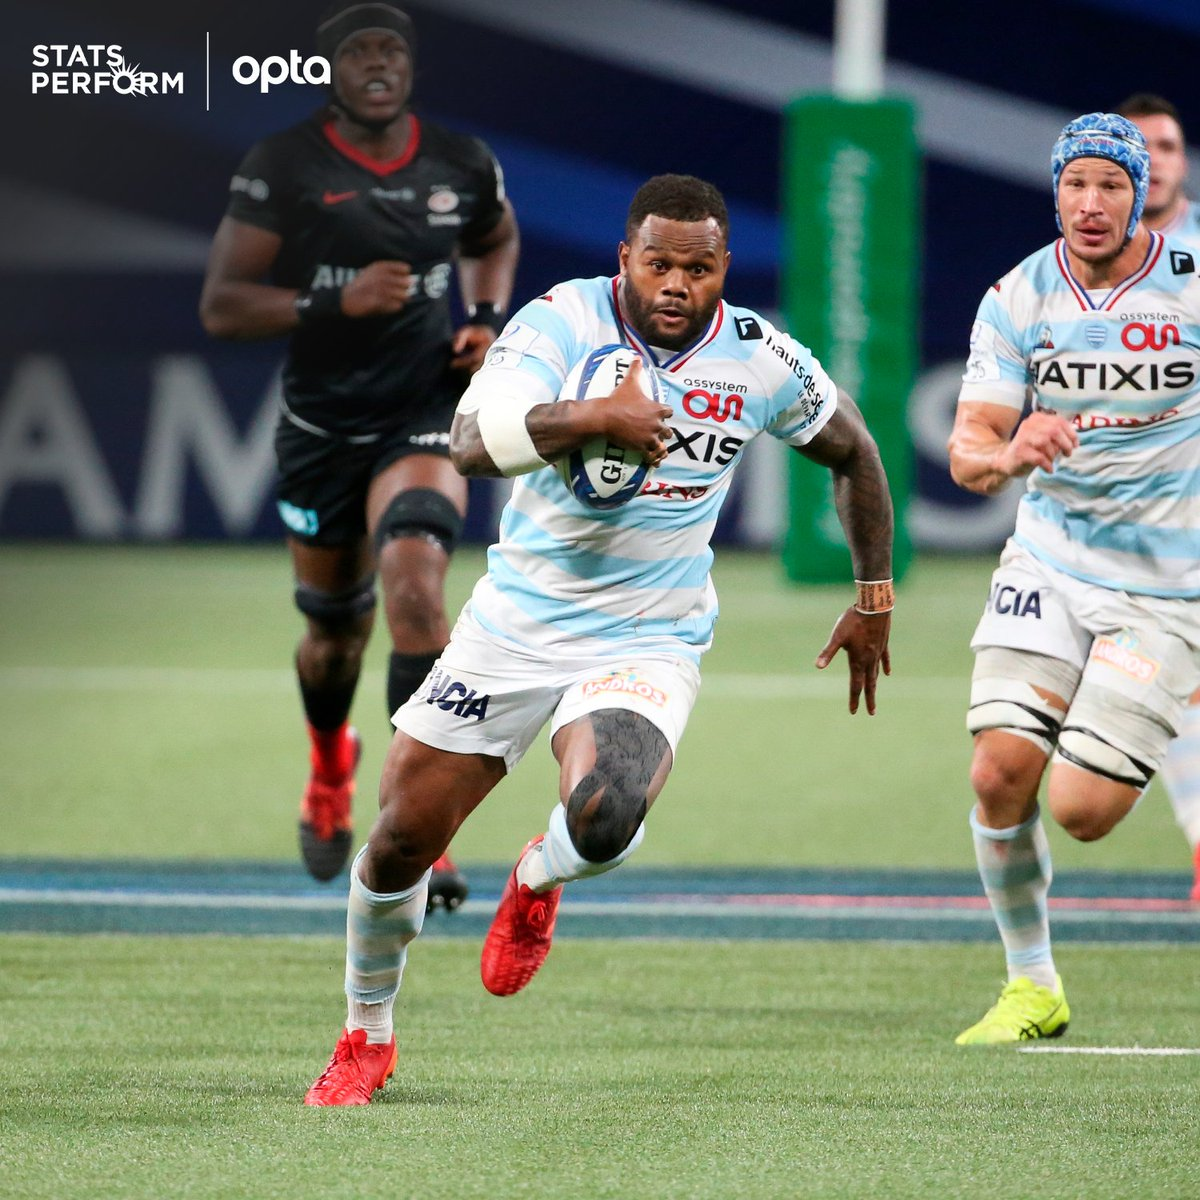 48 - @vvakatawa has beaten 48 defenders in the @ChampionsCup this season, 19 more than any other player, as well as making the most clean breaks (16). Flying. https://t.co/AsAxMFQyil